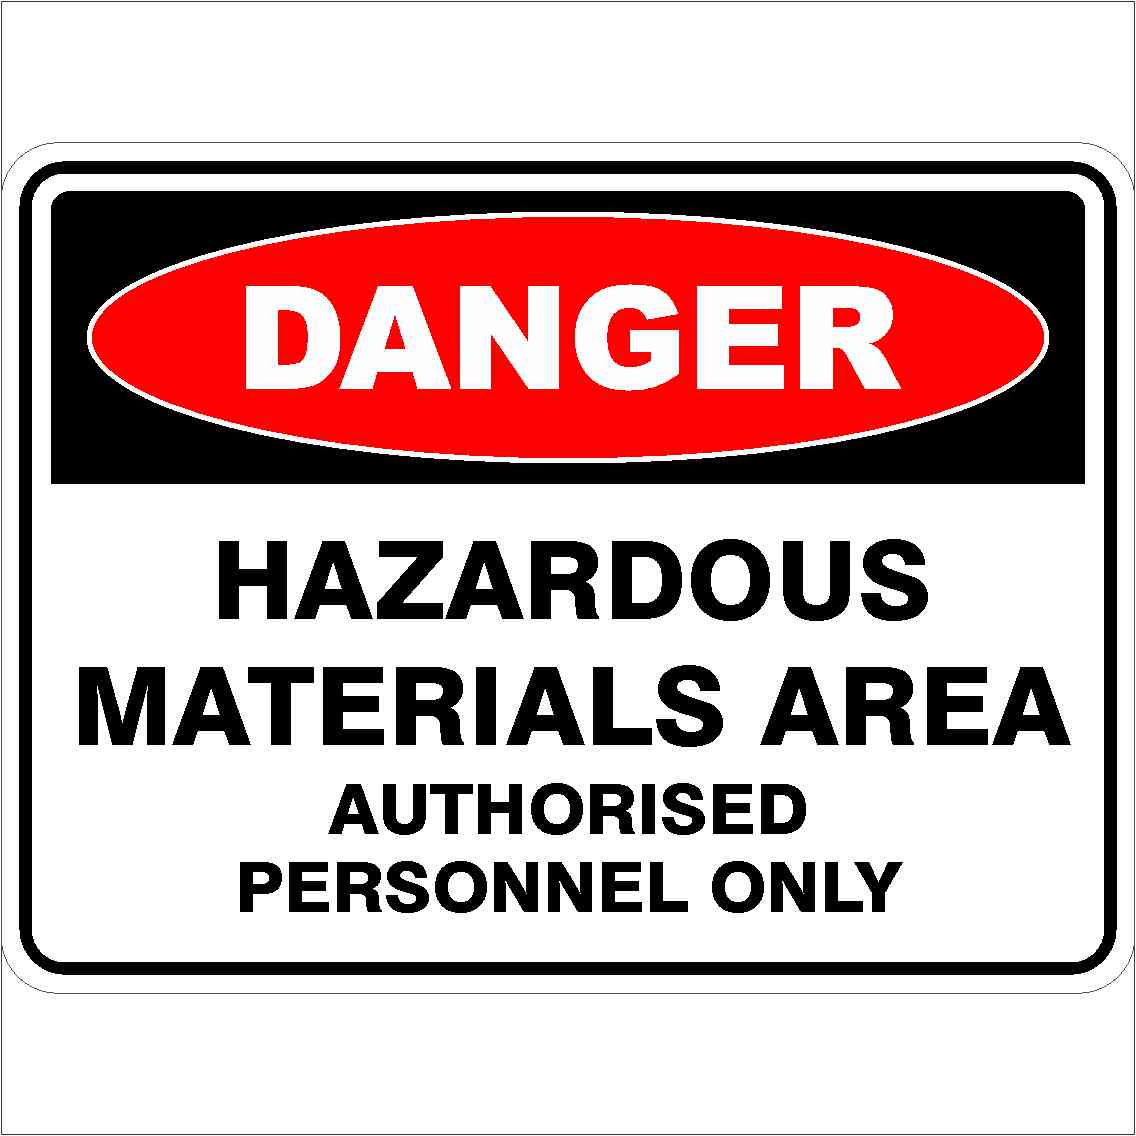 Danger Signs HAZARDOUS MATERIALS AREA AUTHORISED PERSONNEL ONLY